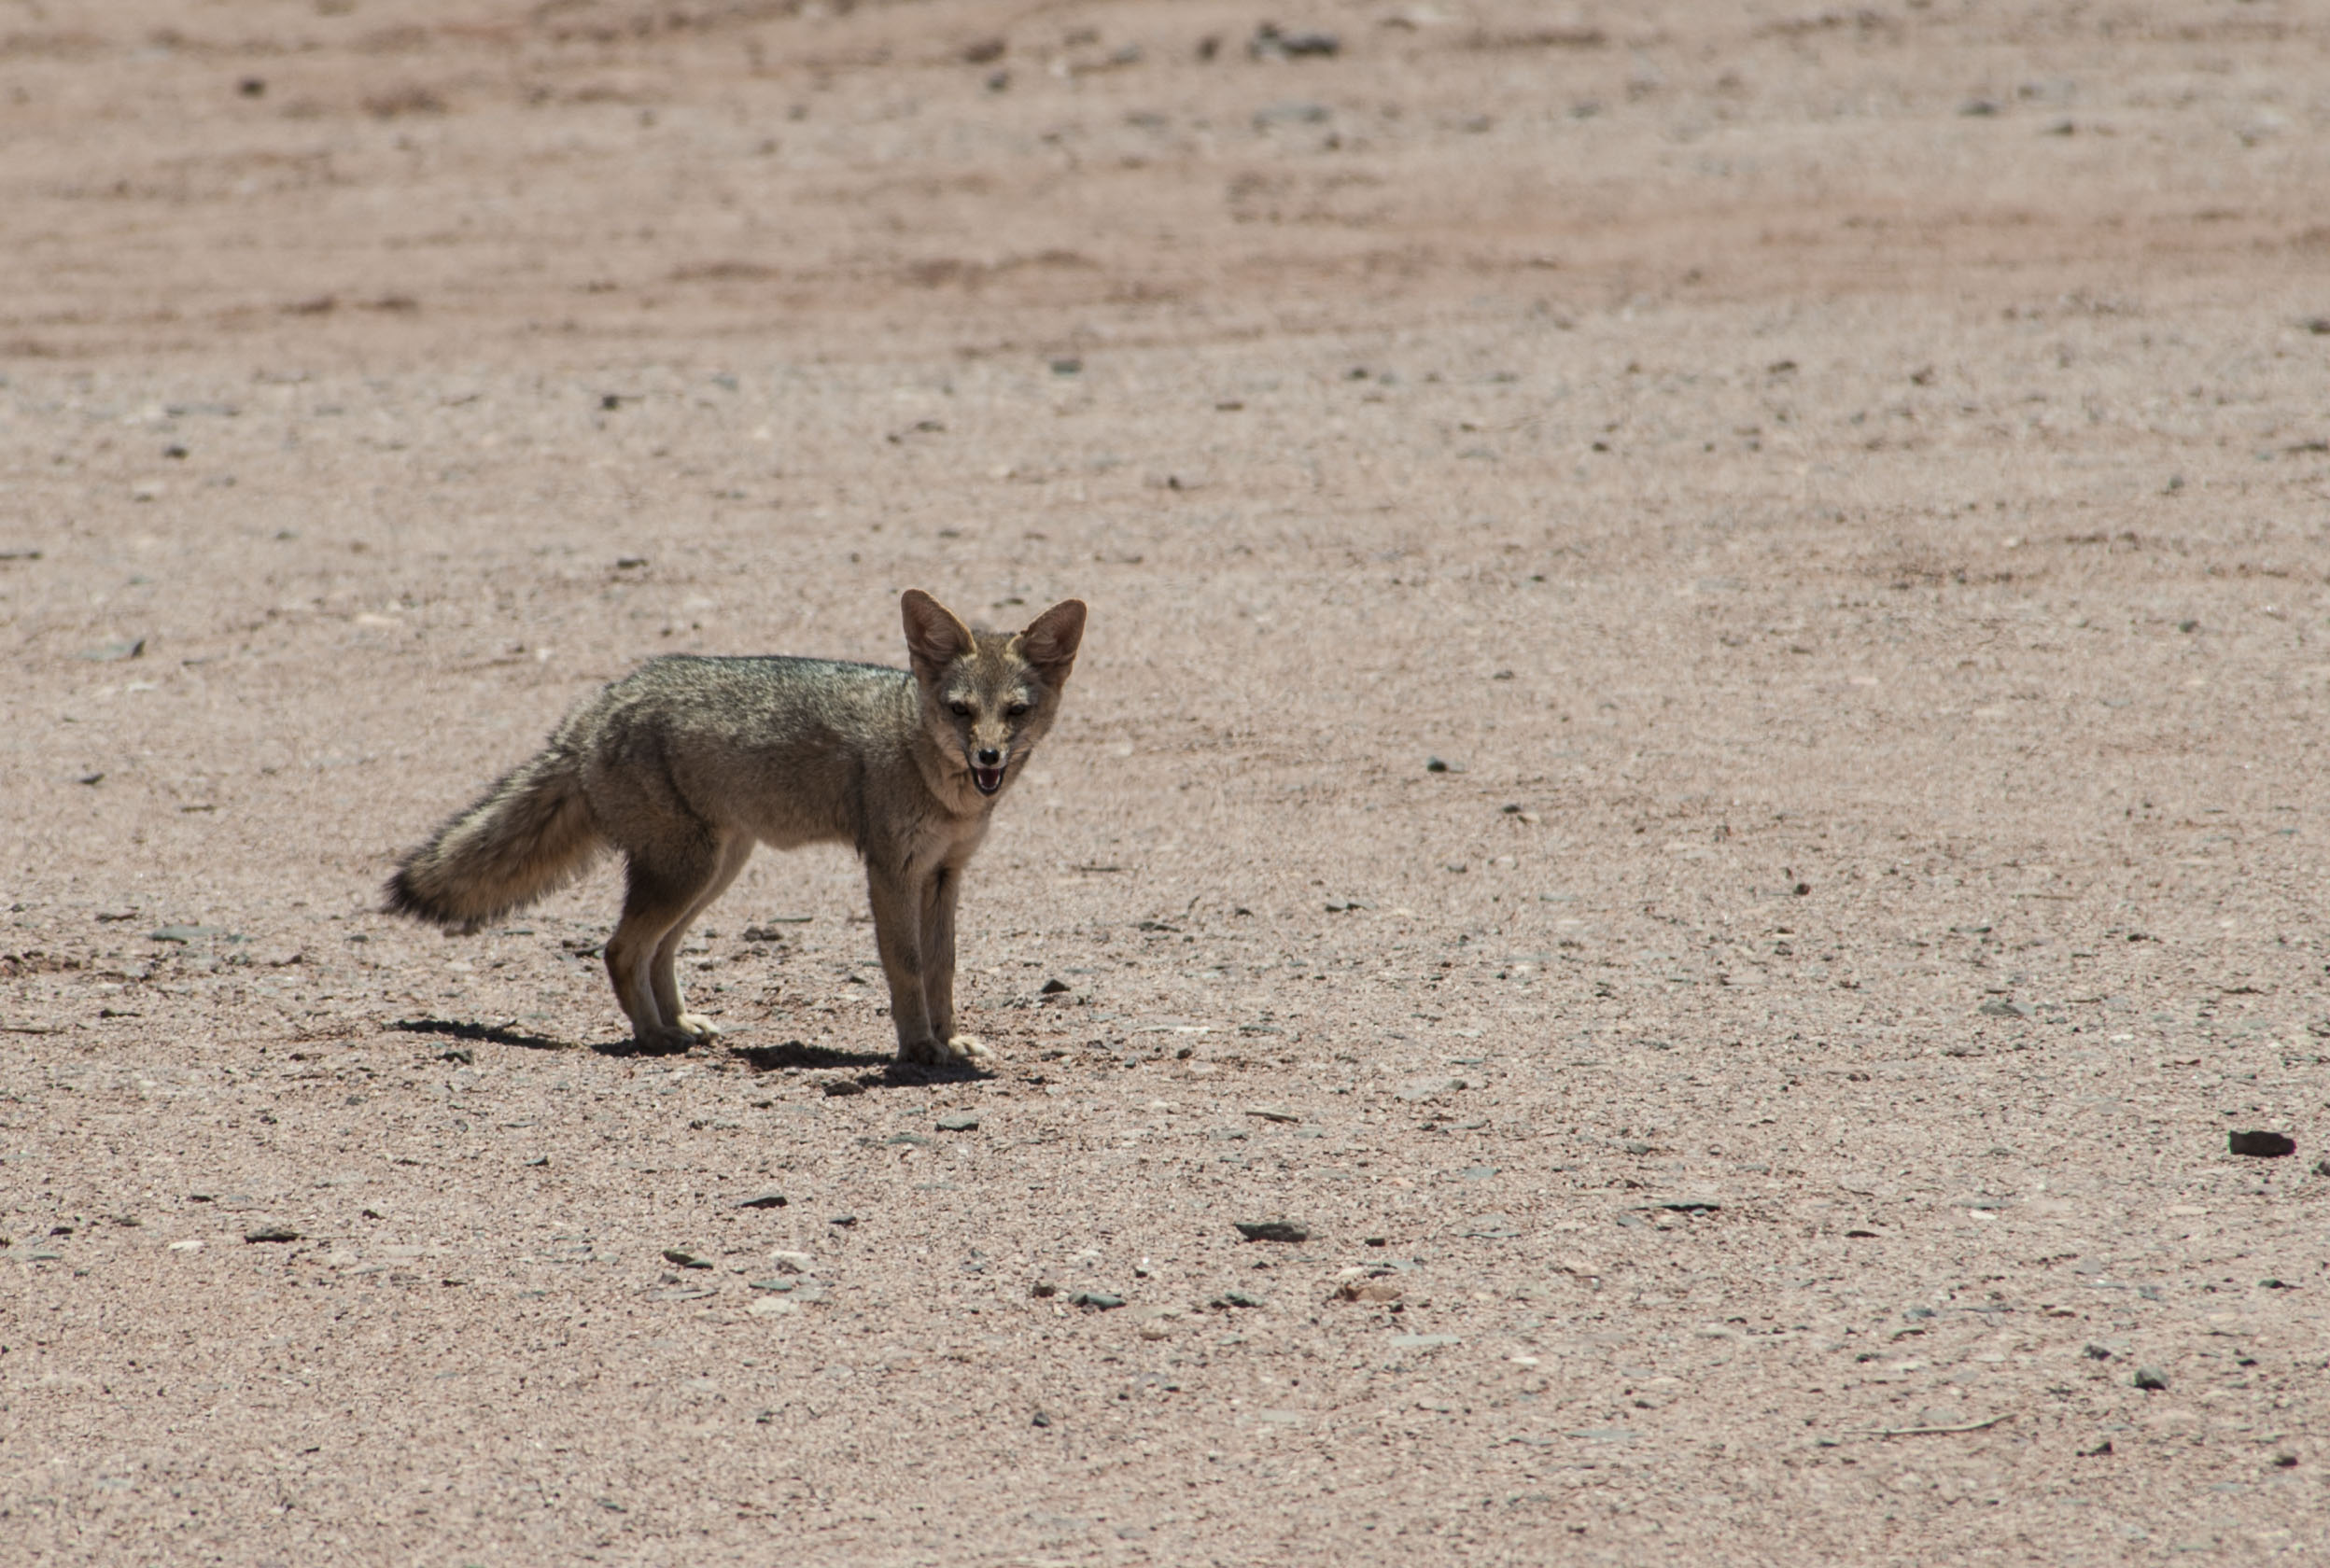 Foxes in the desert - photo#21